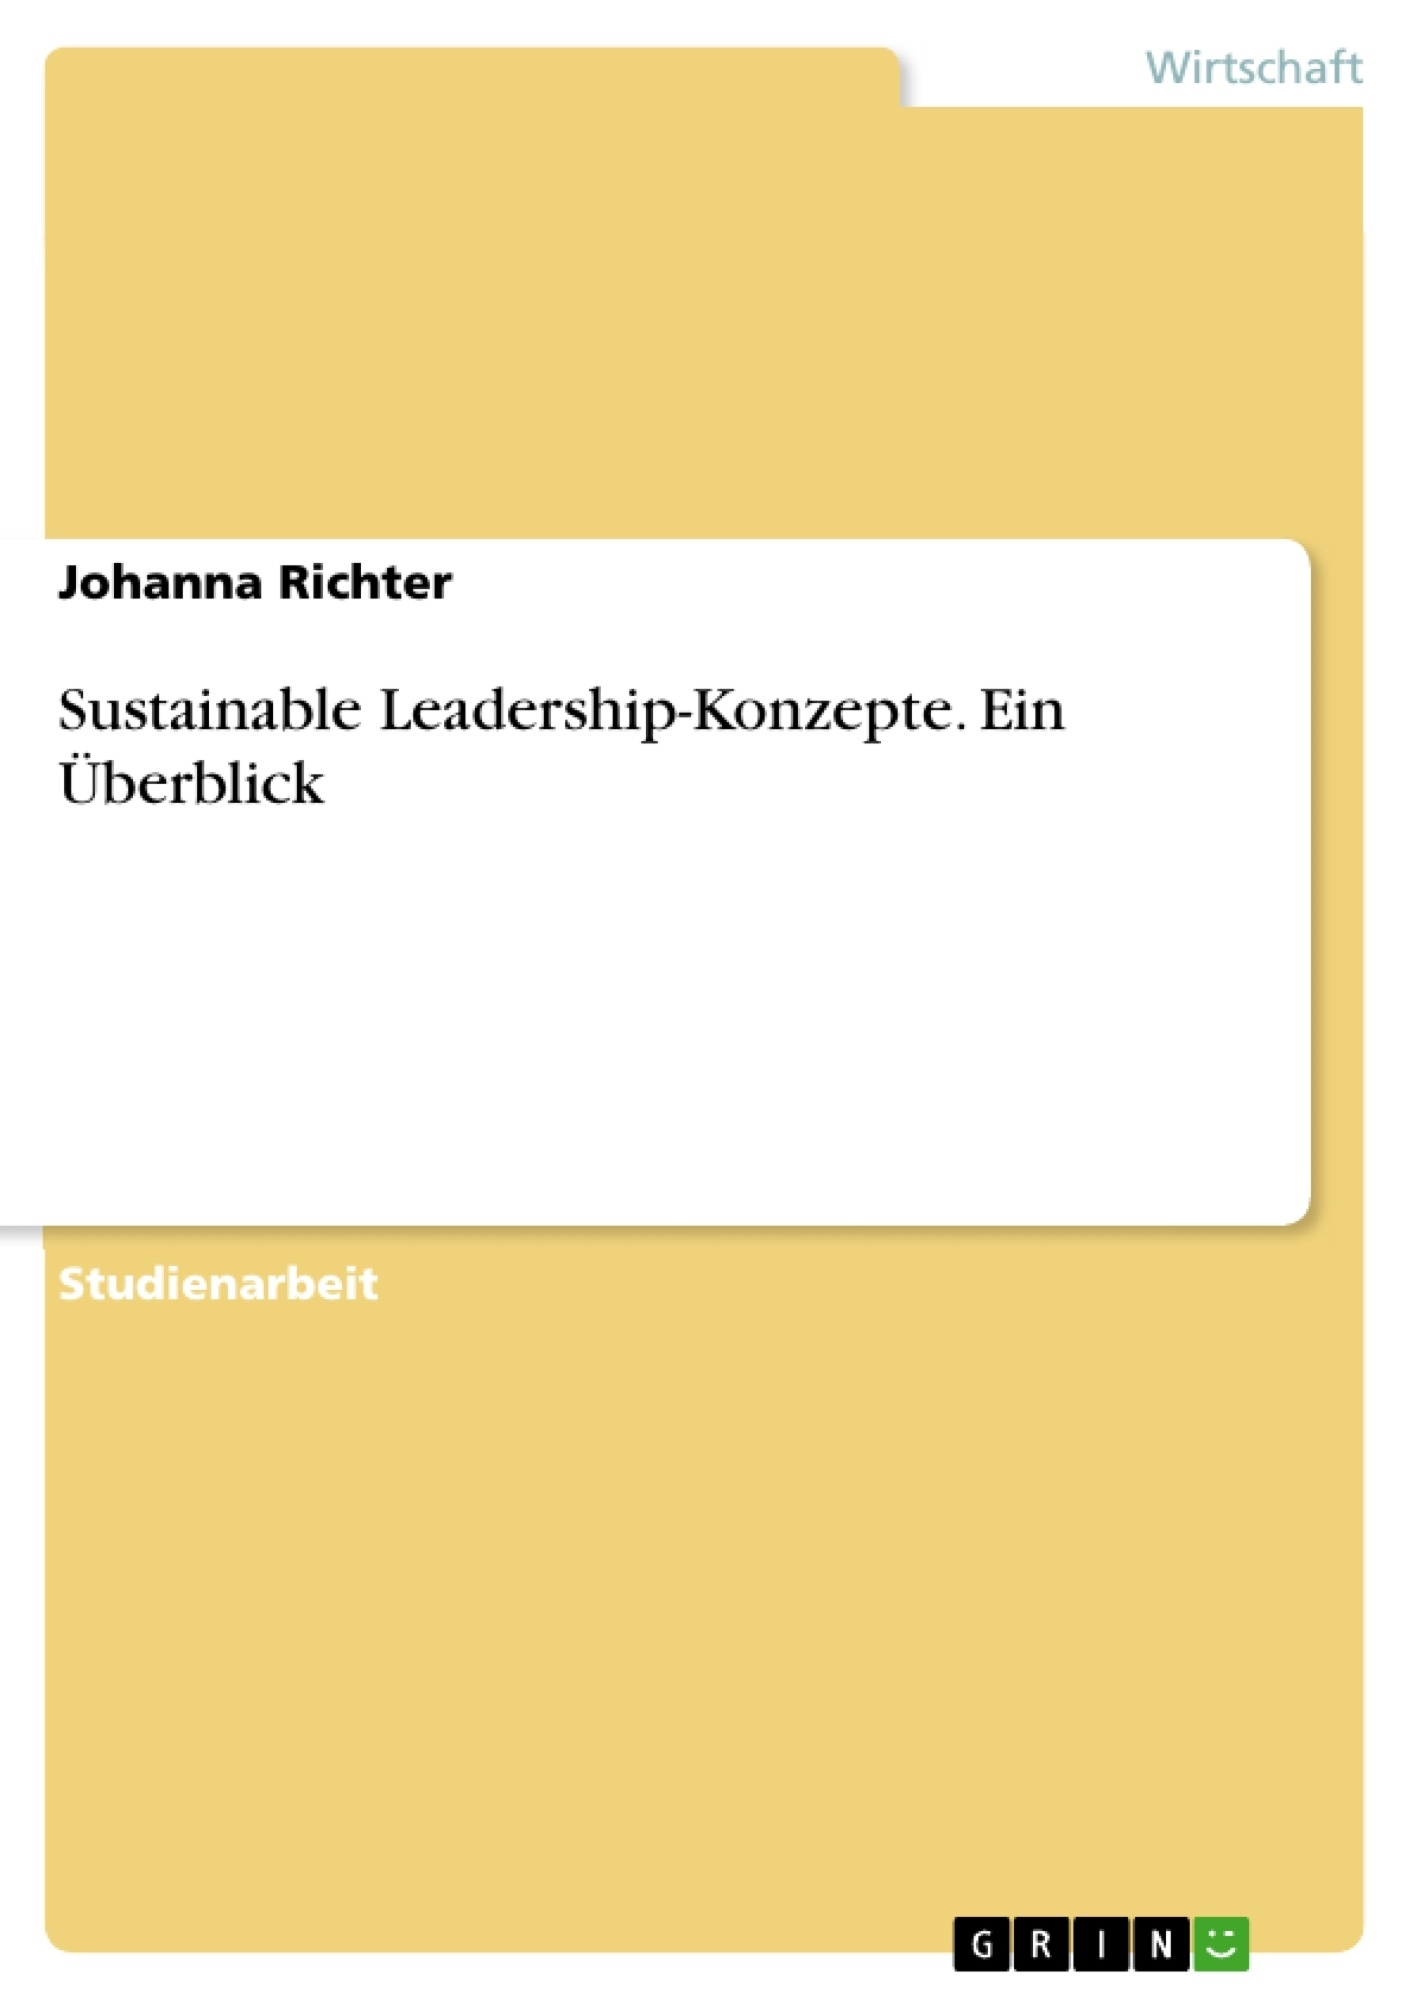 Titel: Sustainable Leadership-Konzepte. Ein Überblick